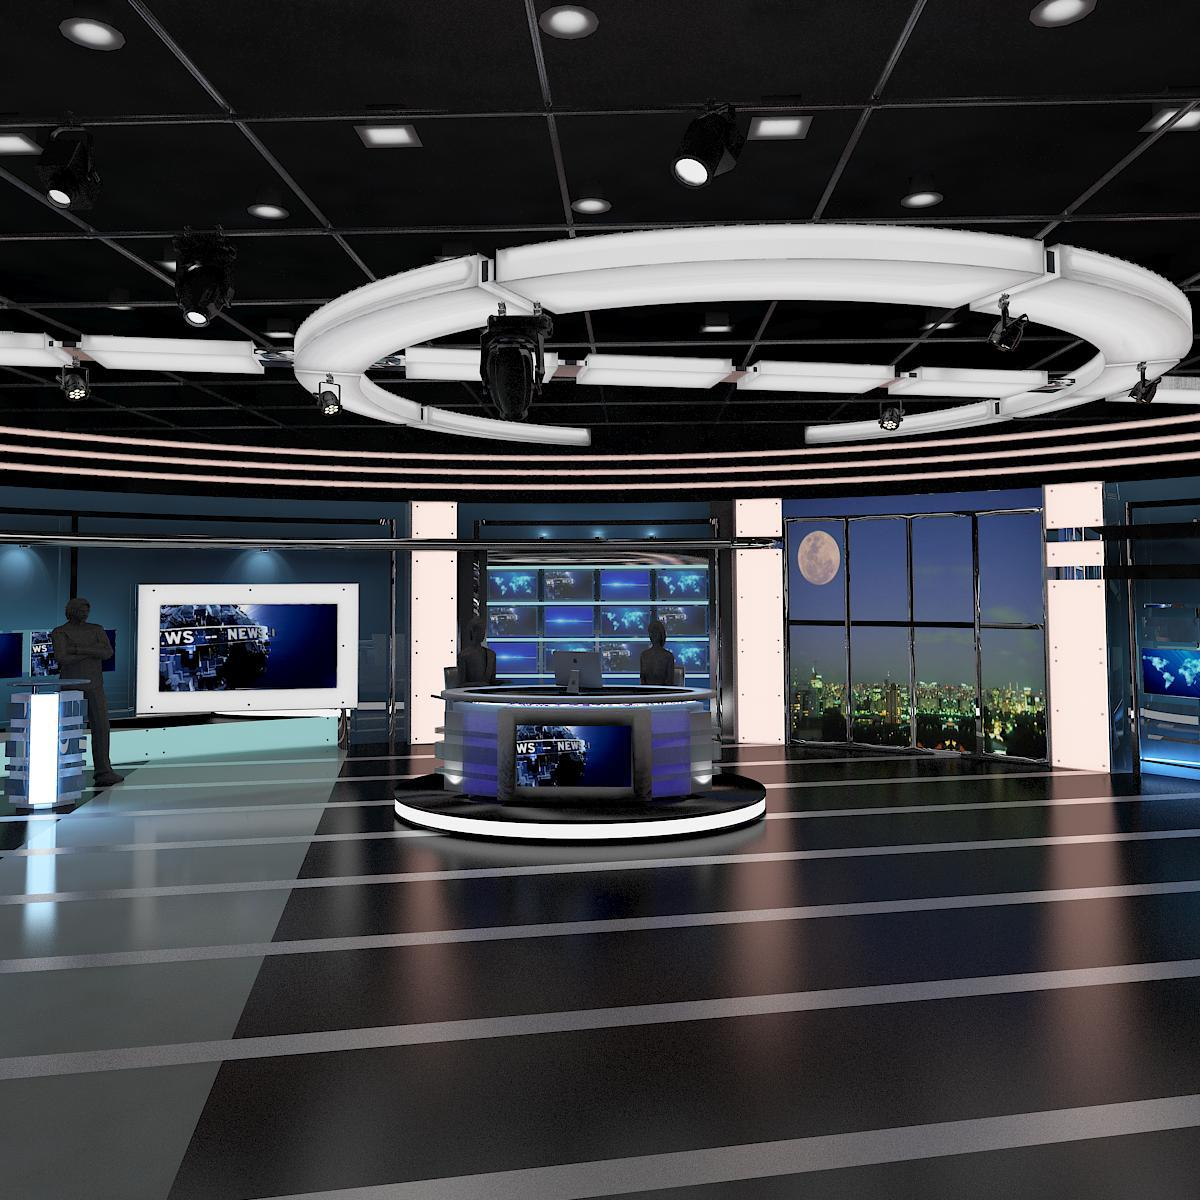 tv wirtualna scena news room studio 027 3d model 3ds max dxf fbx texture obj 215541